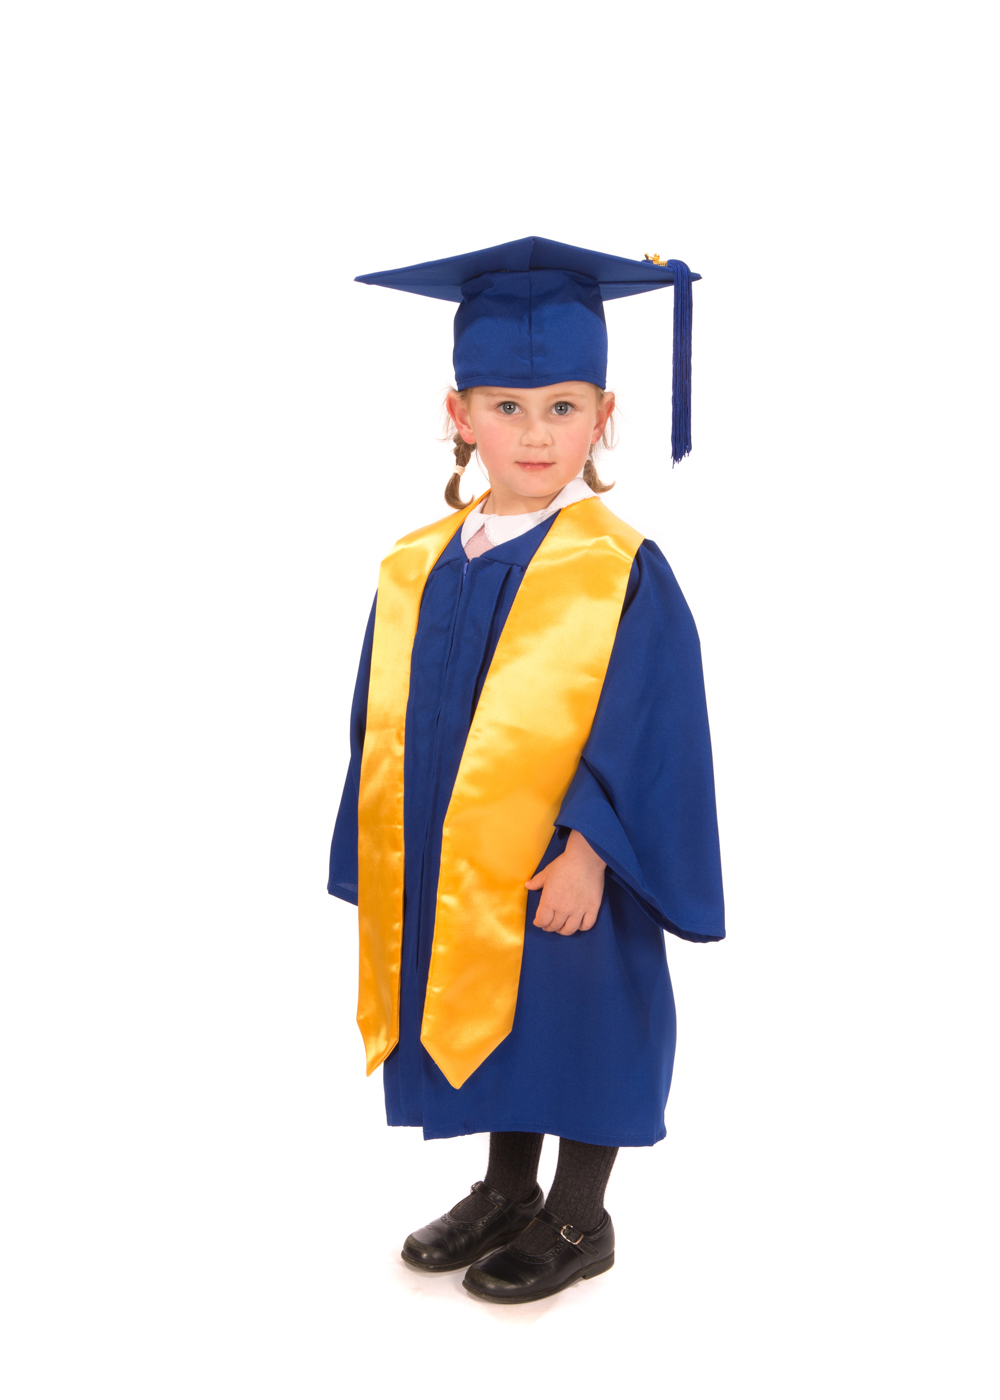 Matte Nursery Graduation Gown, Cap and Stole - Graduation Gowns in ...